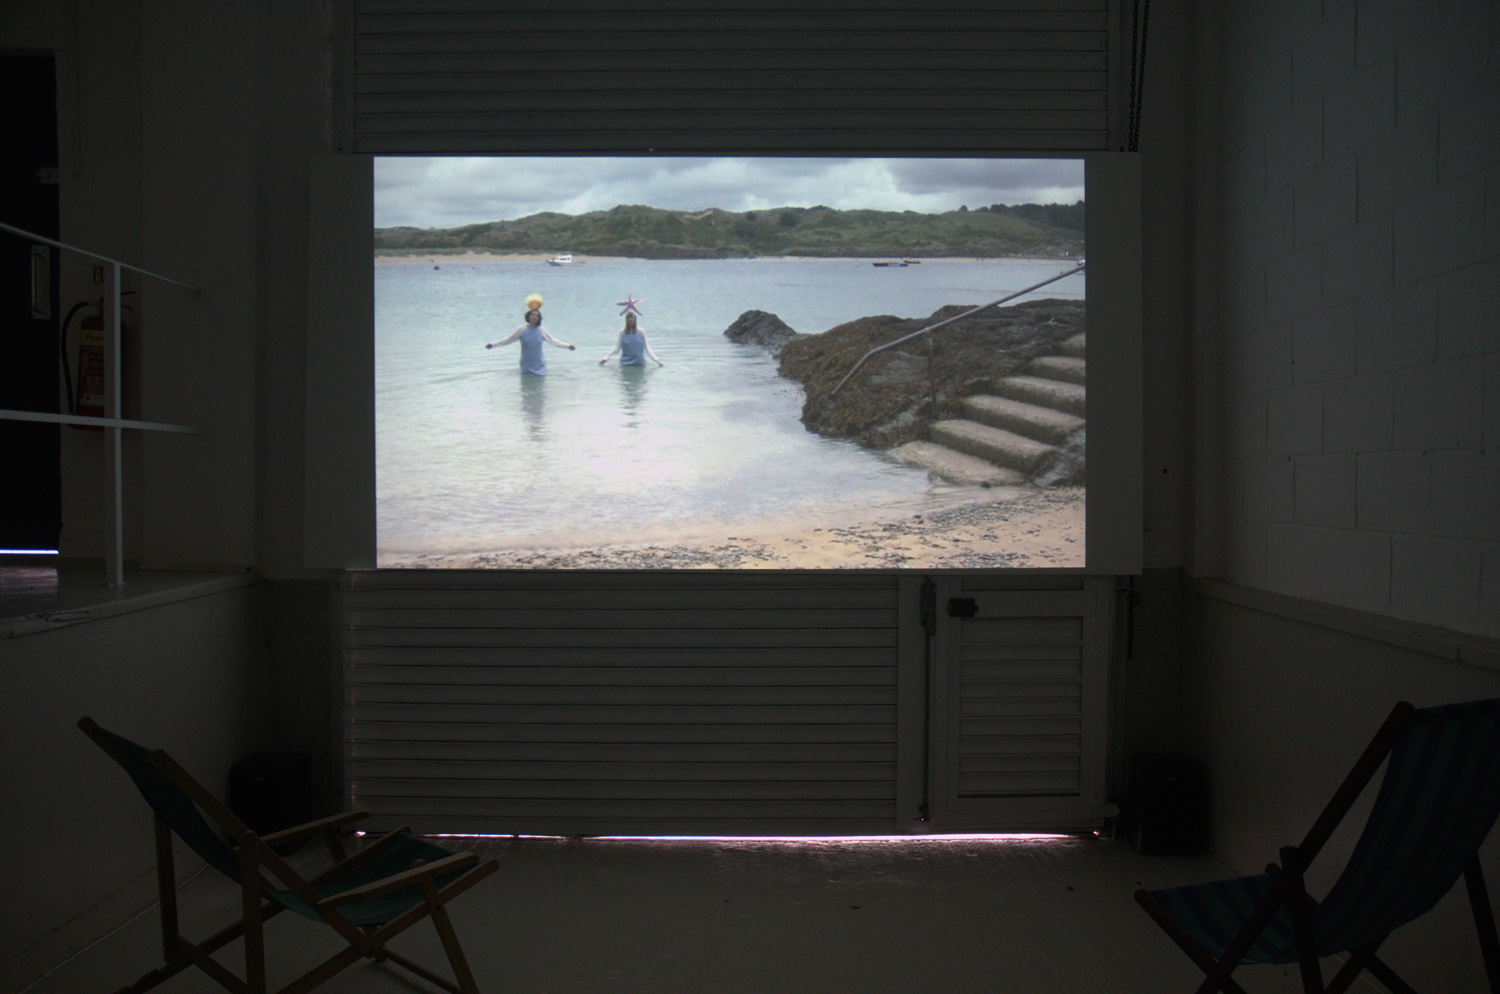 Installation view,[background] Lucy Stein and Shana Moulton, Polventon, 2013,Video,10:38 minutes